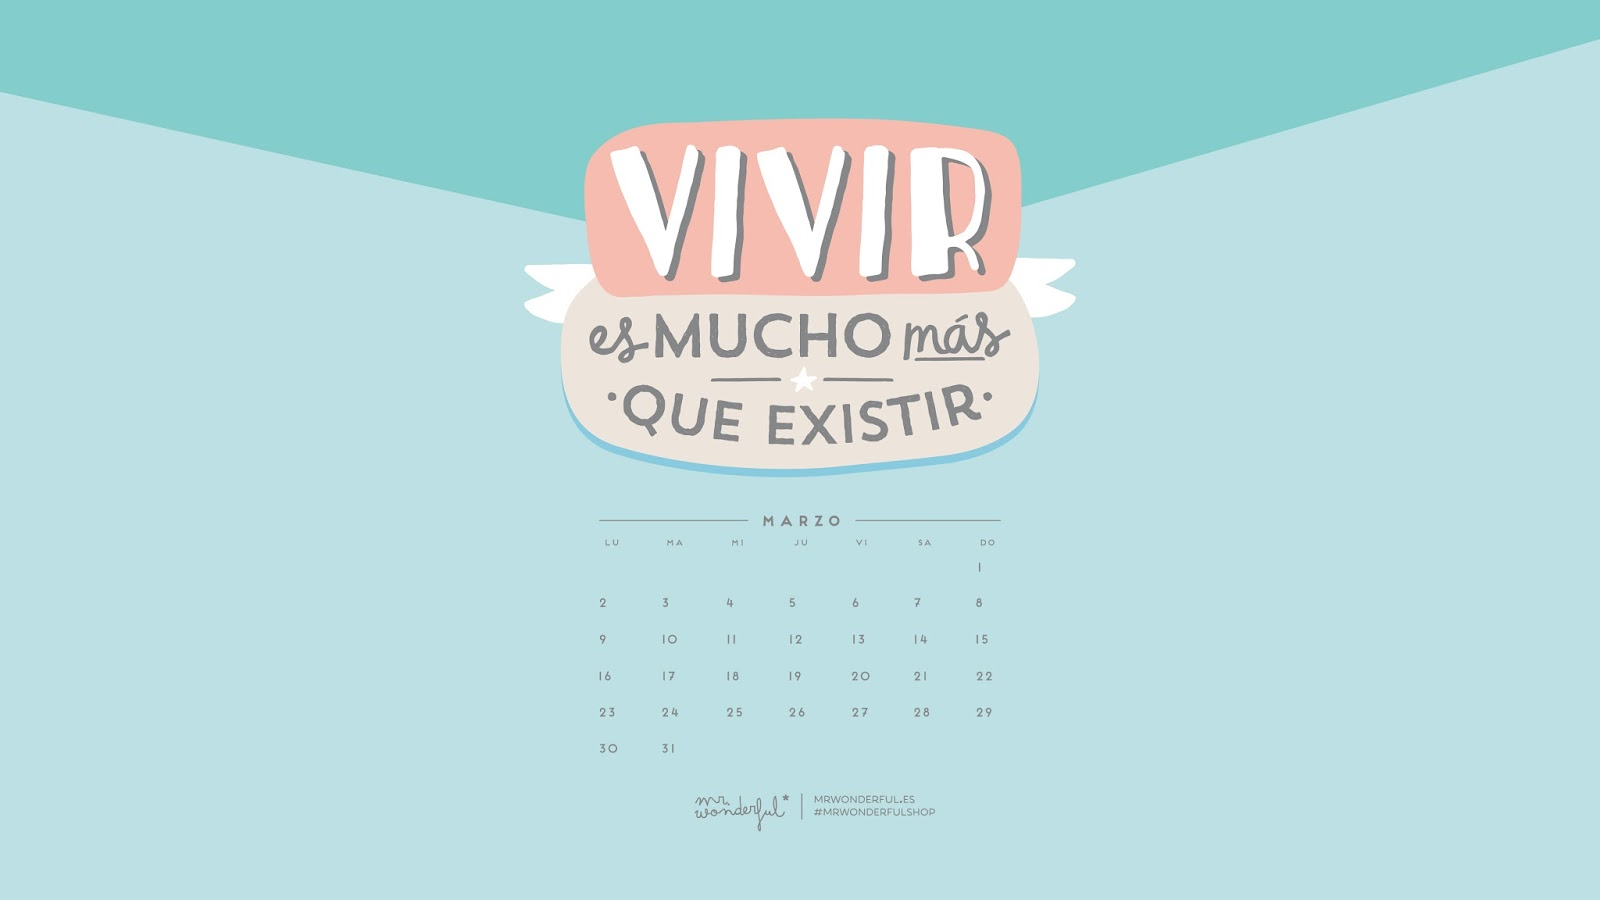 Fondos de pantalla descargables mr wonderful onlyness for Fondos de pantalla ordenador gratis